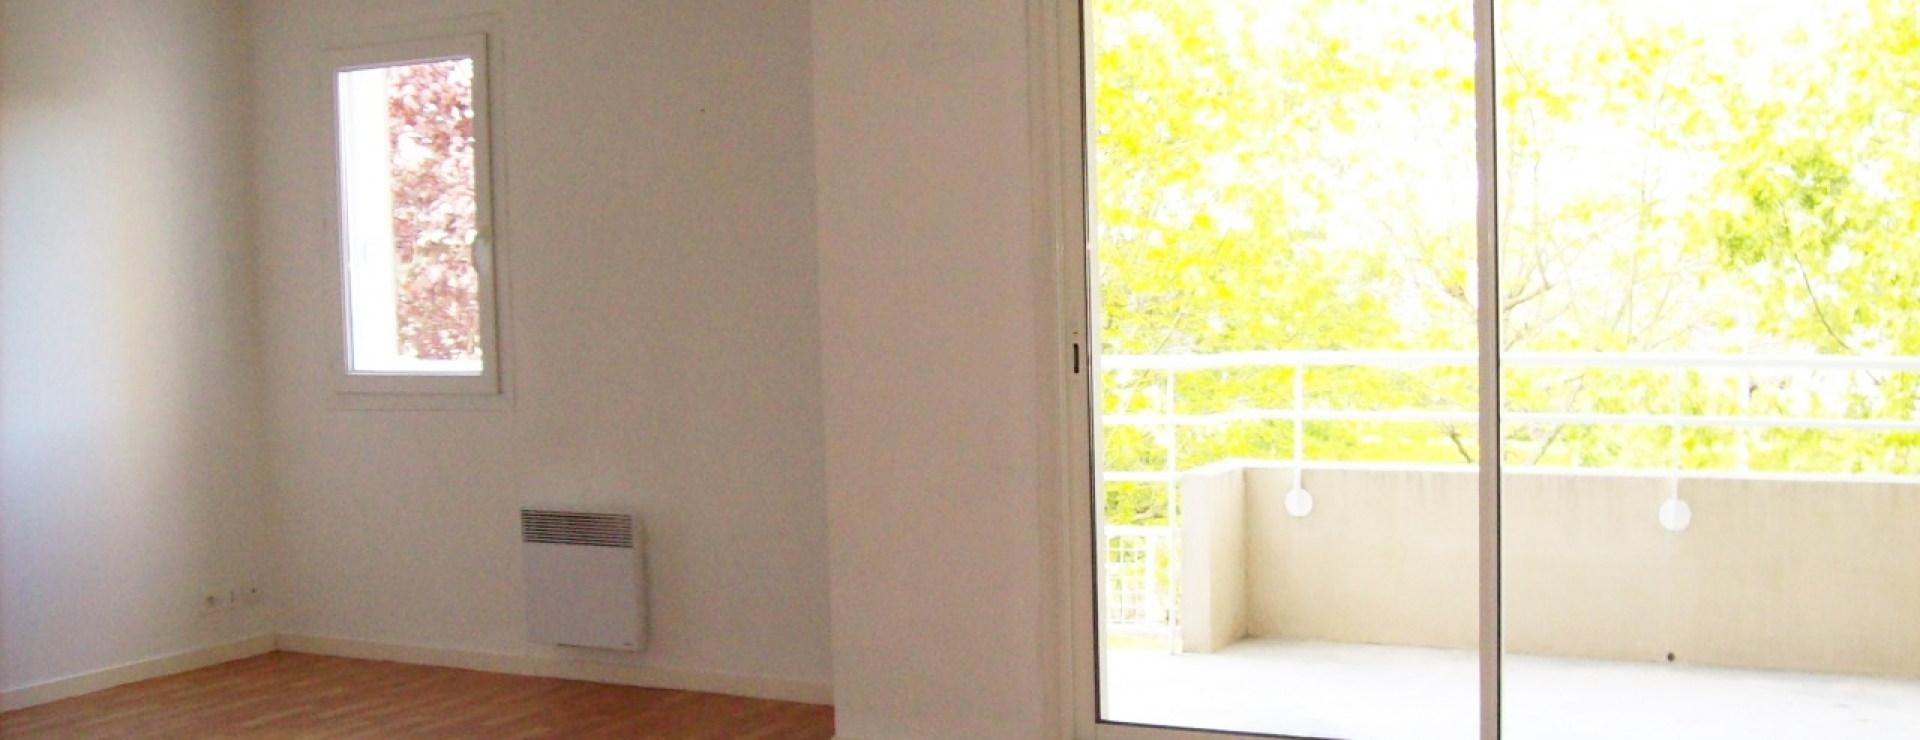 APPARTEMENT T3 GUIDEL HYPER BOURG.